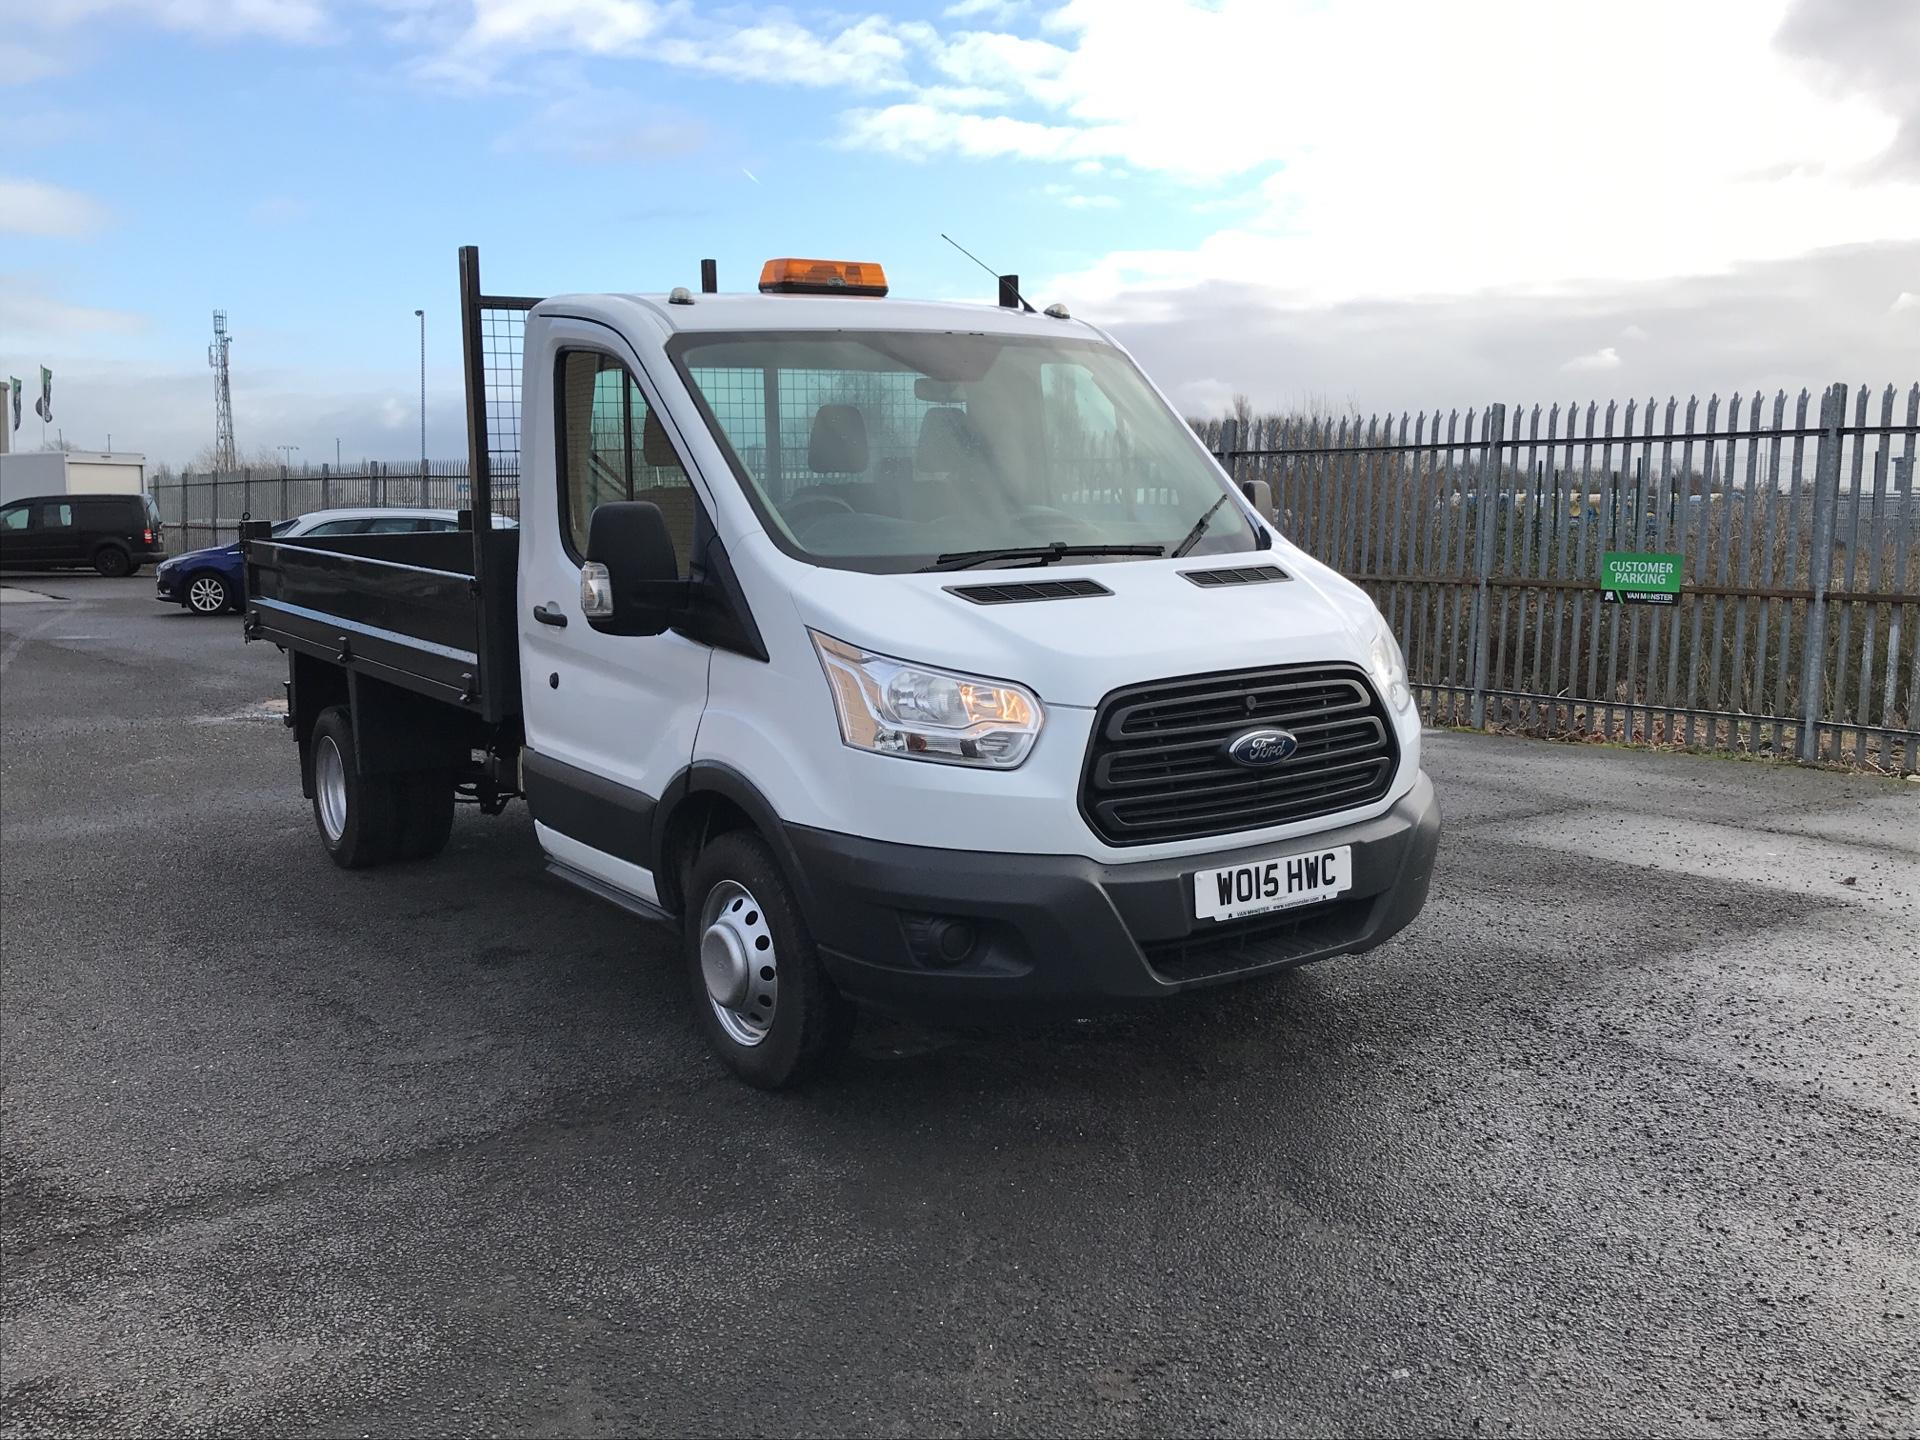 2015 Ford Transit  T350 SINGLE CAB TIPPER 125PS EURO 5 (WO15HWC)